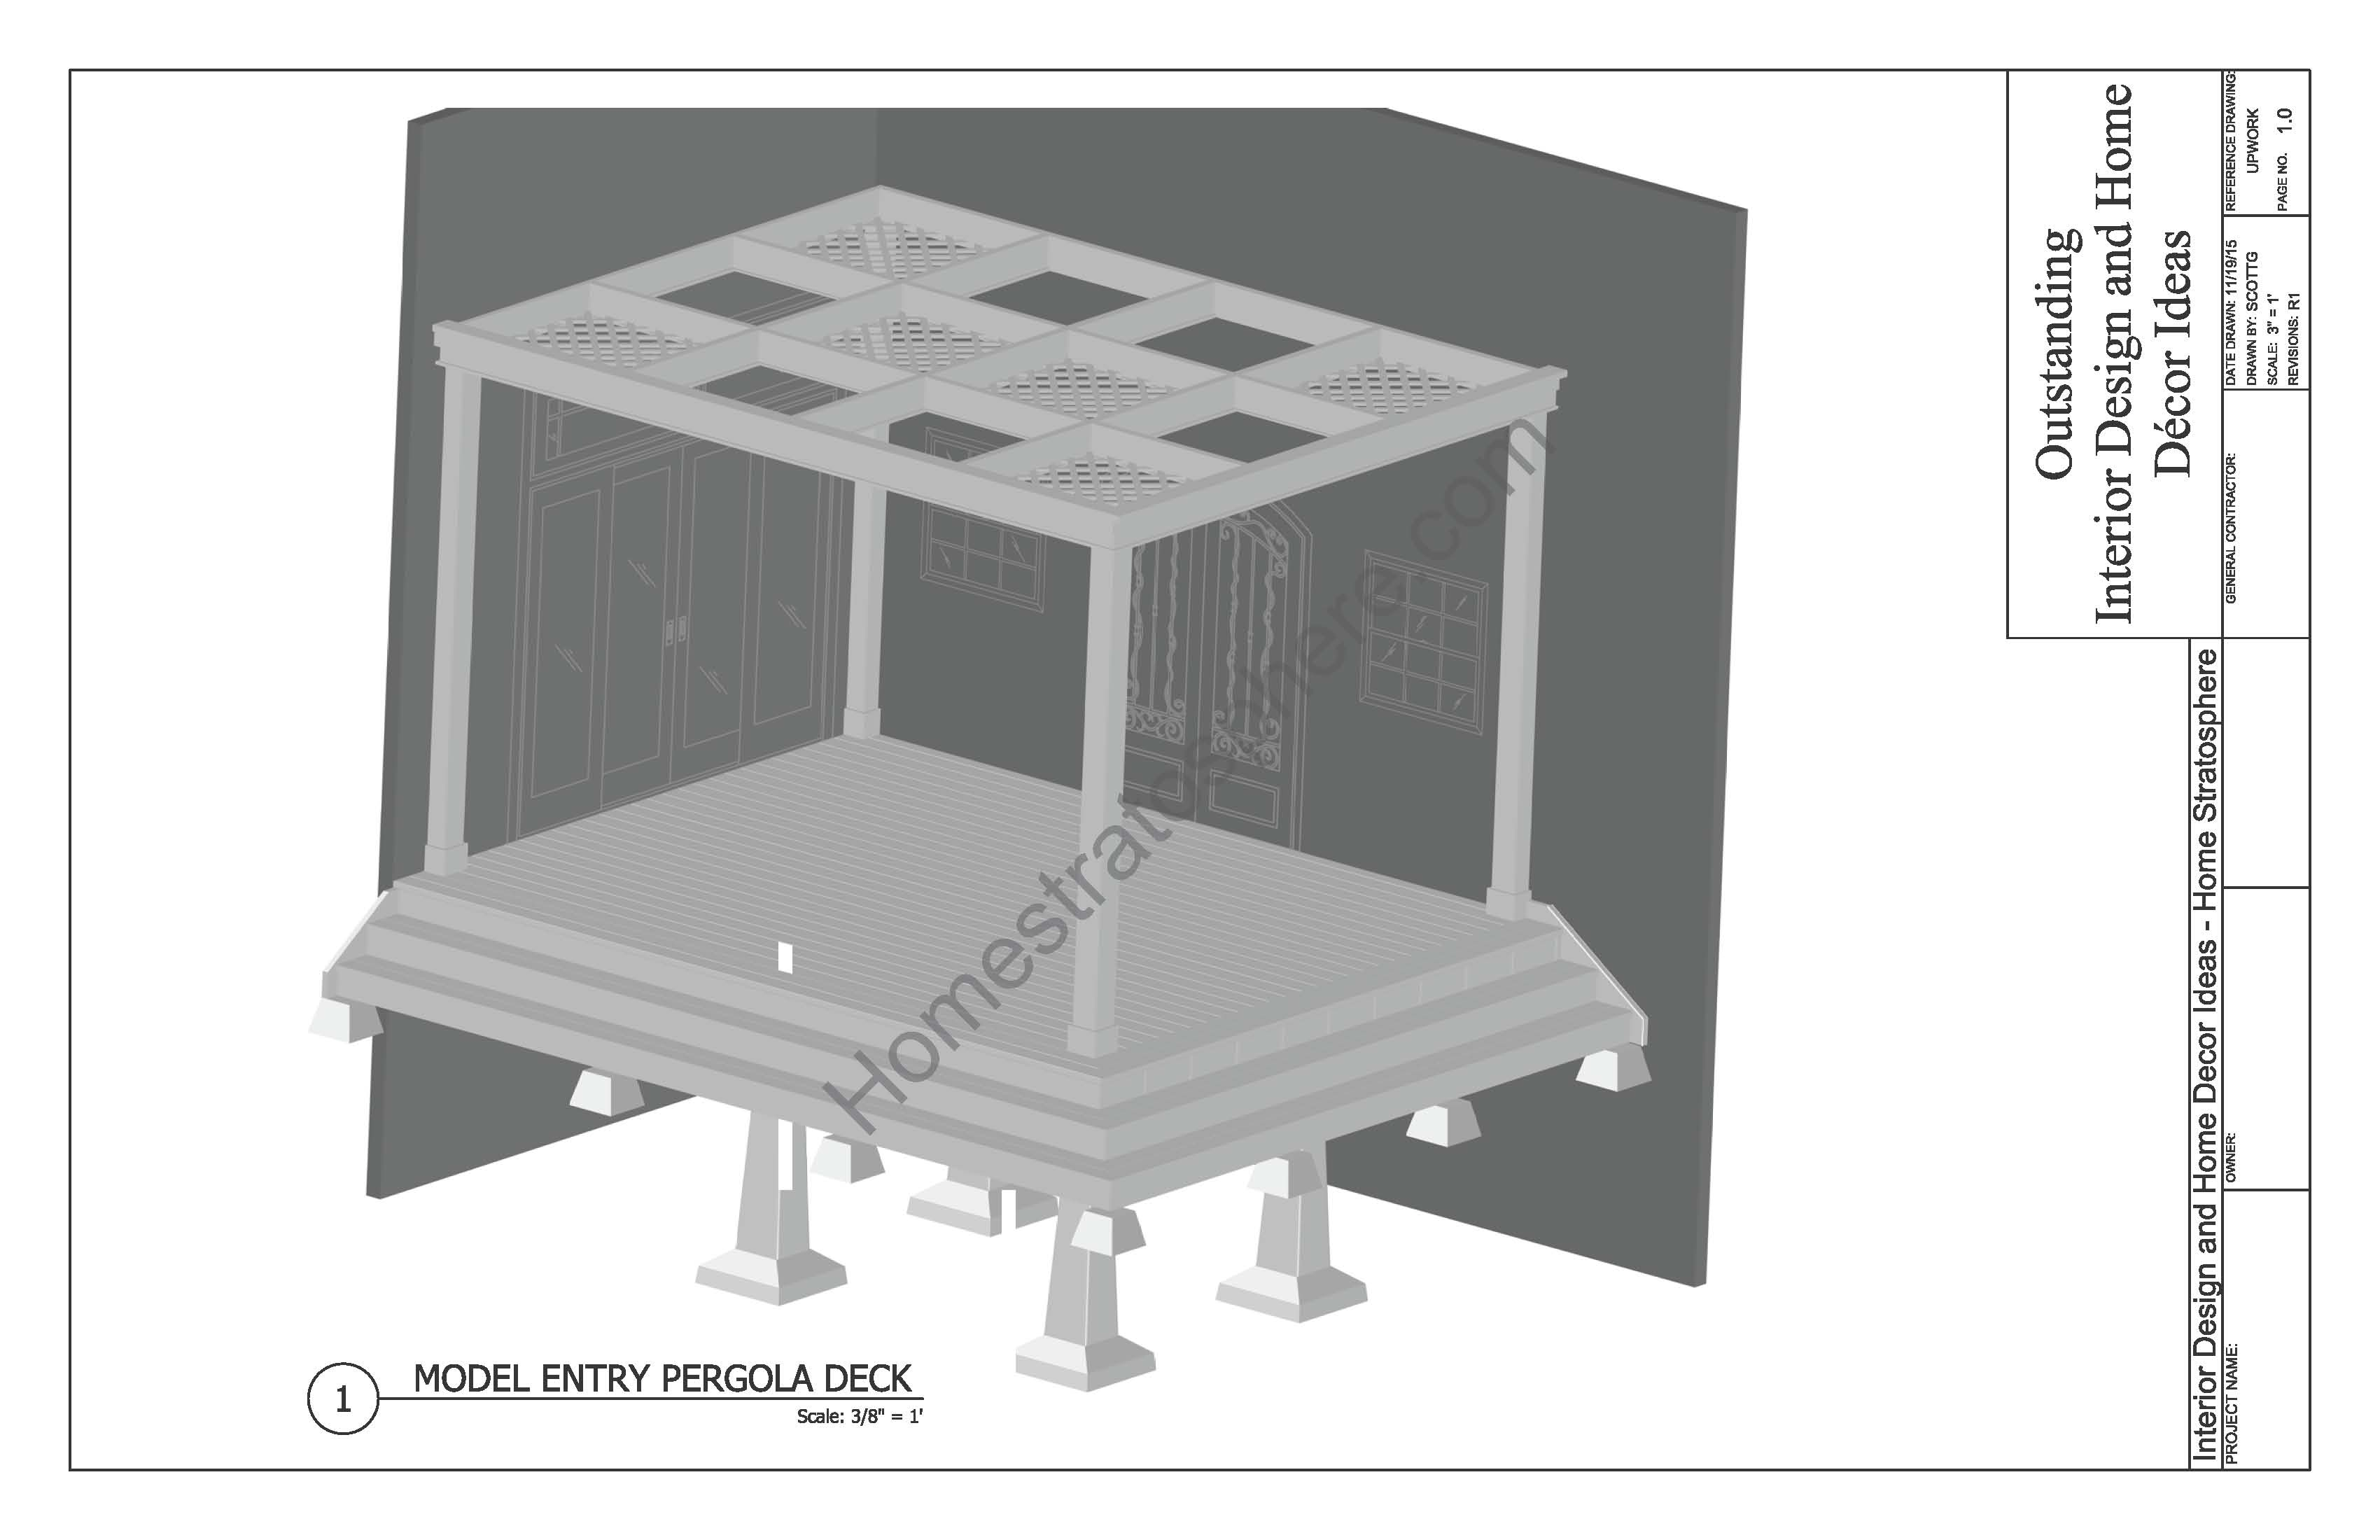 Free deck plans and blueprints online with pdf downloads deck design with pergola plans baanklon Gallery